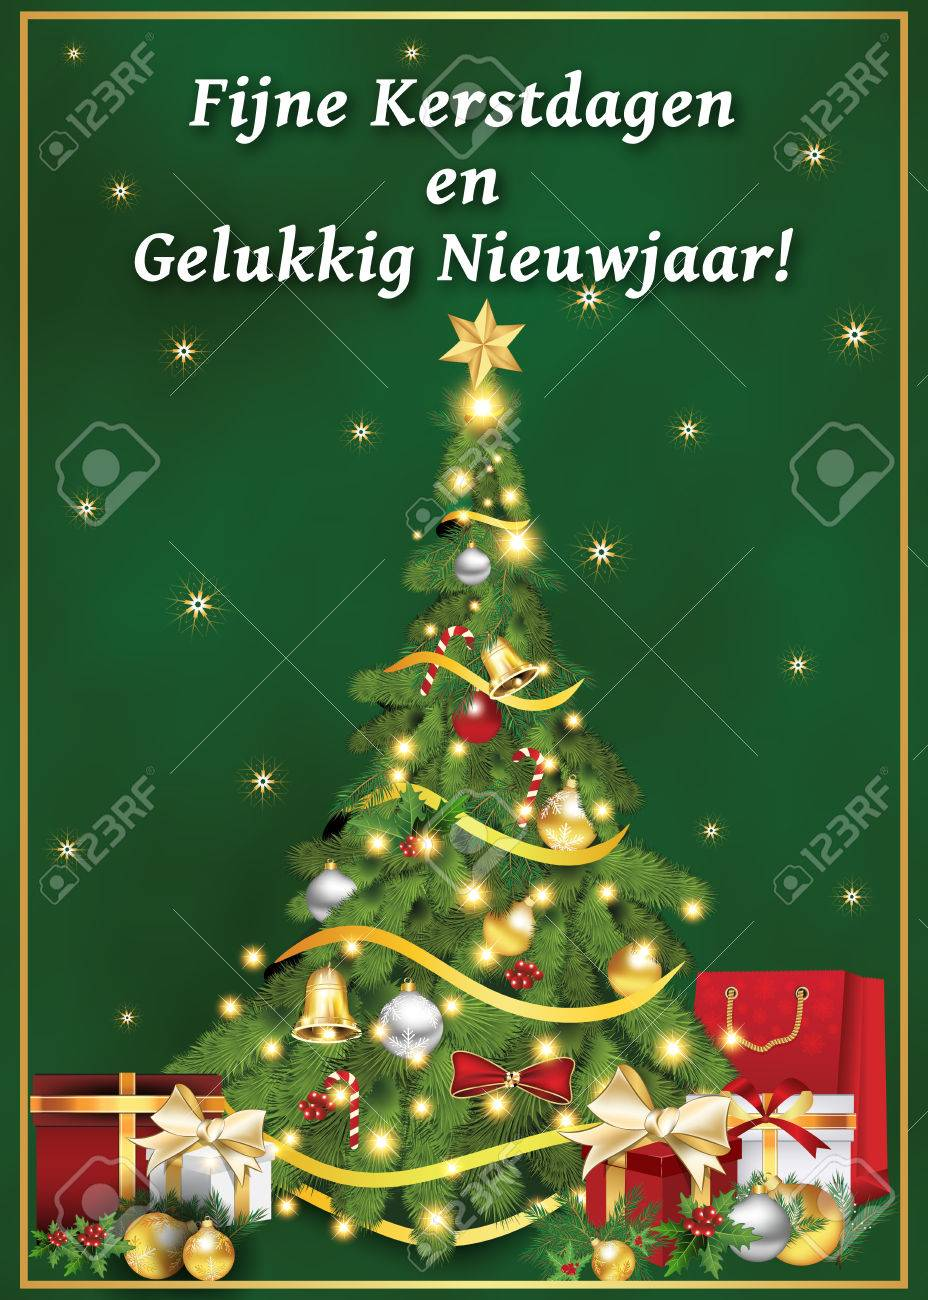 fijne kerstdagen en gelukkig nieuwjaar dutch language merry christmas and happy new year